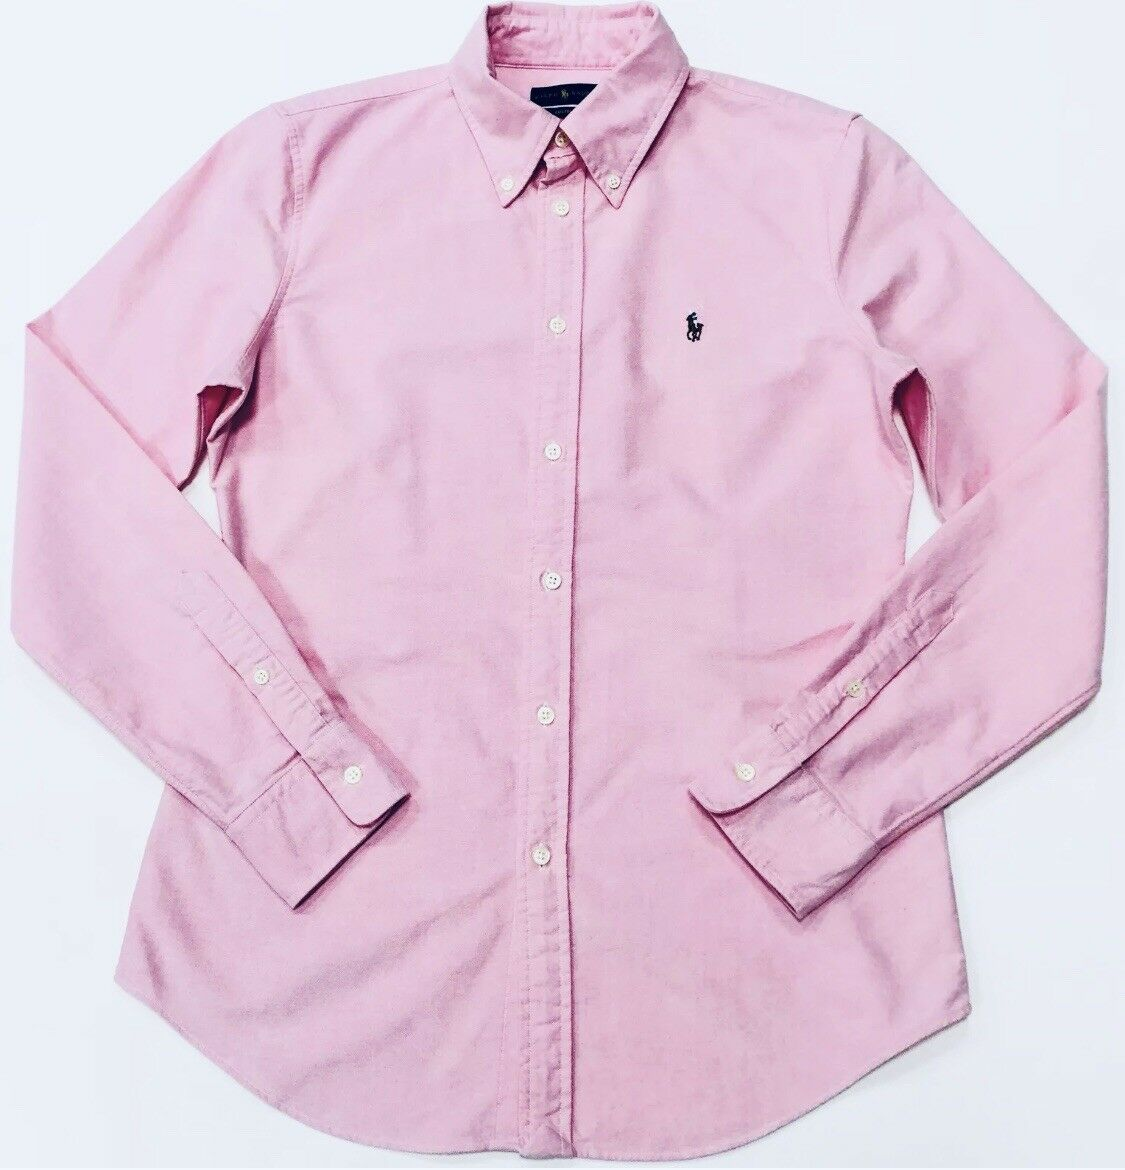 Ralph Lauren camicia oxford slim slim slim fit in rosa d9b084